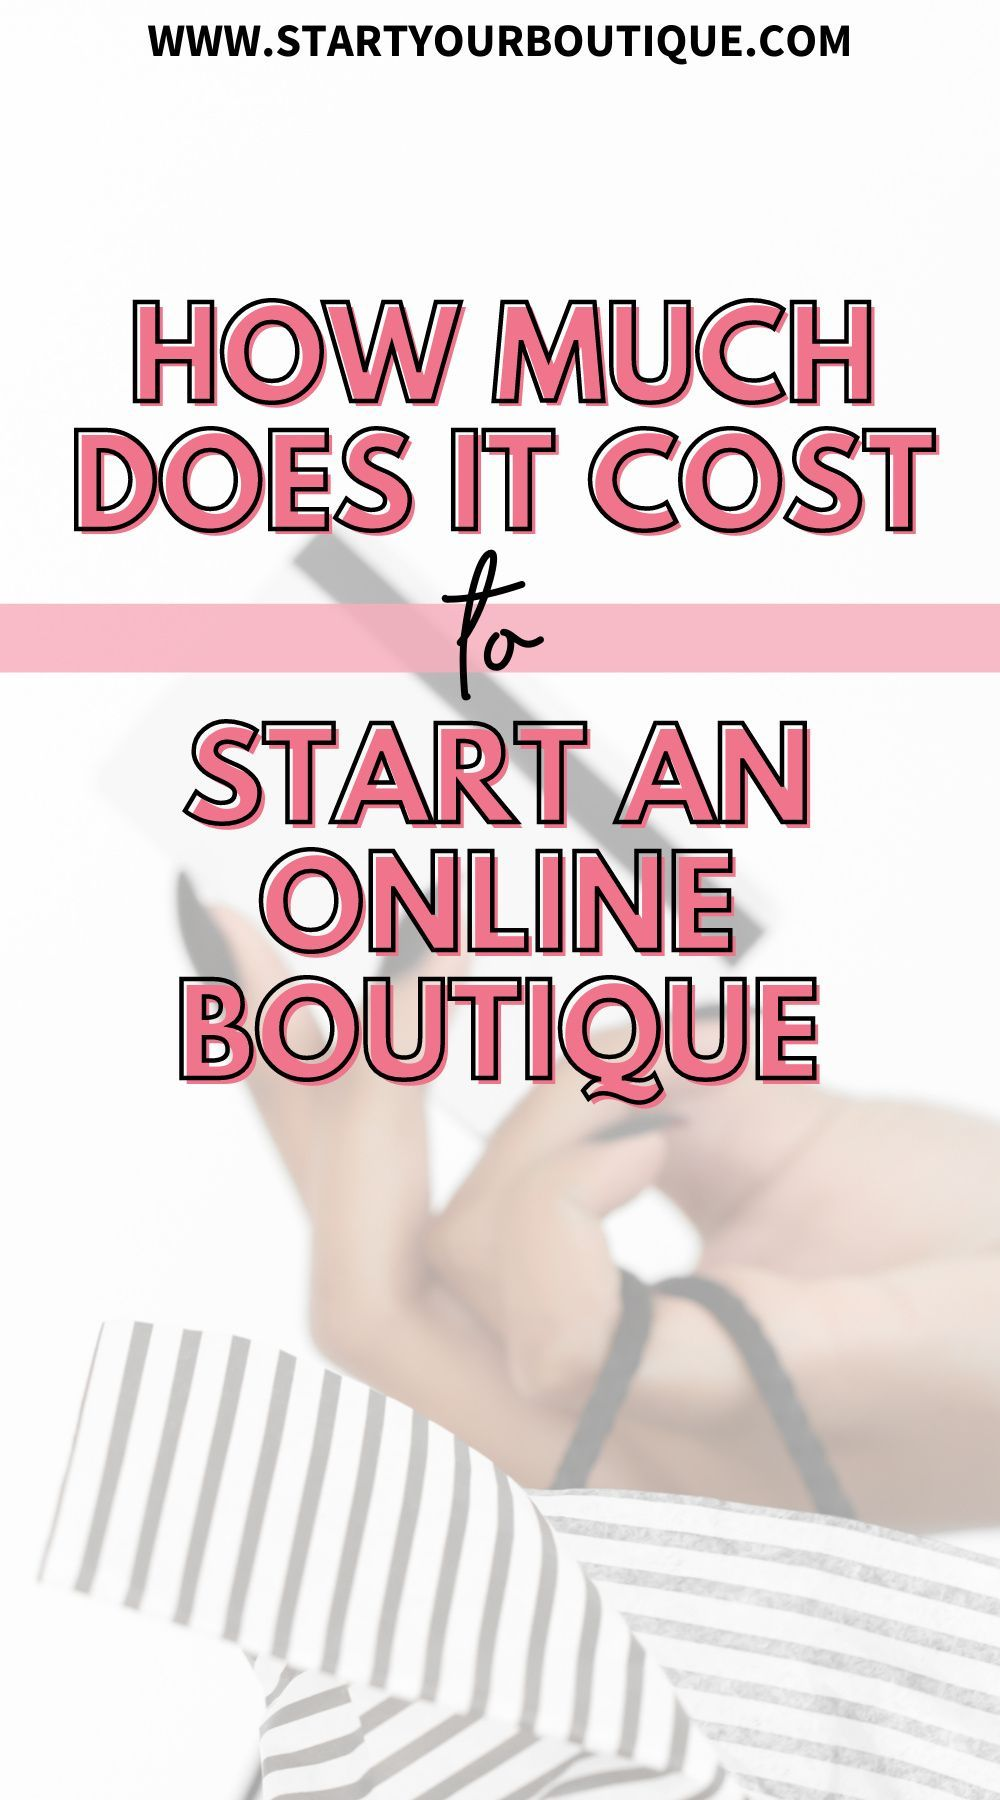 There is a lot of hype out there about starting a business with no money. But to start a successful business you need working capital. I will break down for you the true cost of opening an Online Boutique. Get my complete list of cost to consider when starting an online boutique. Get all the info now!